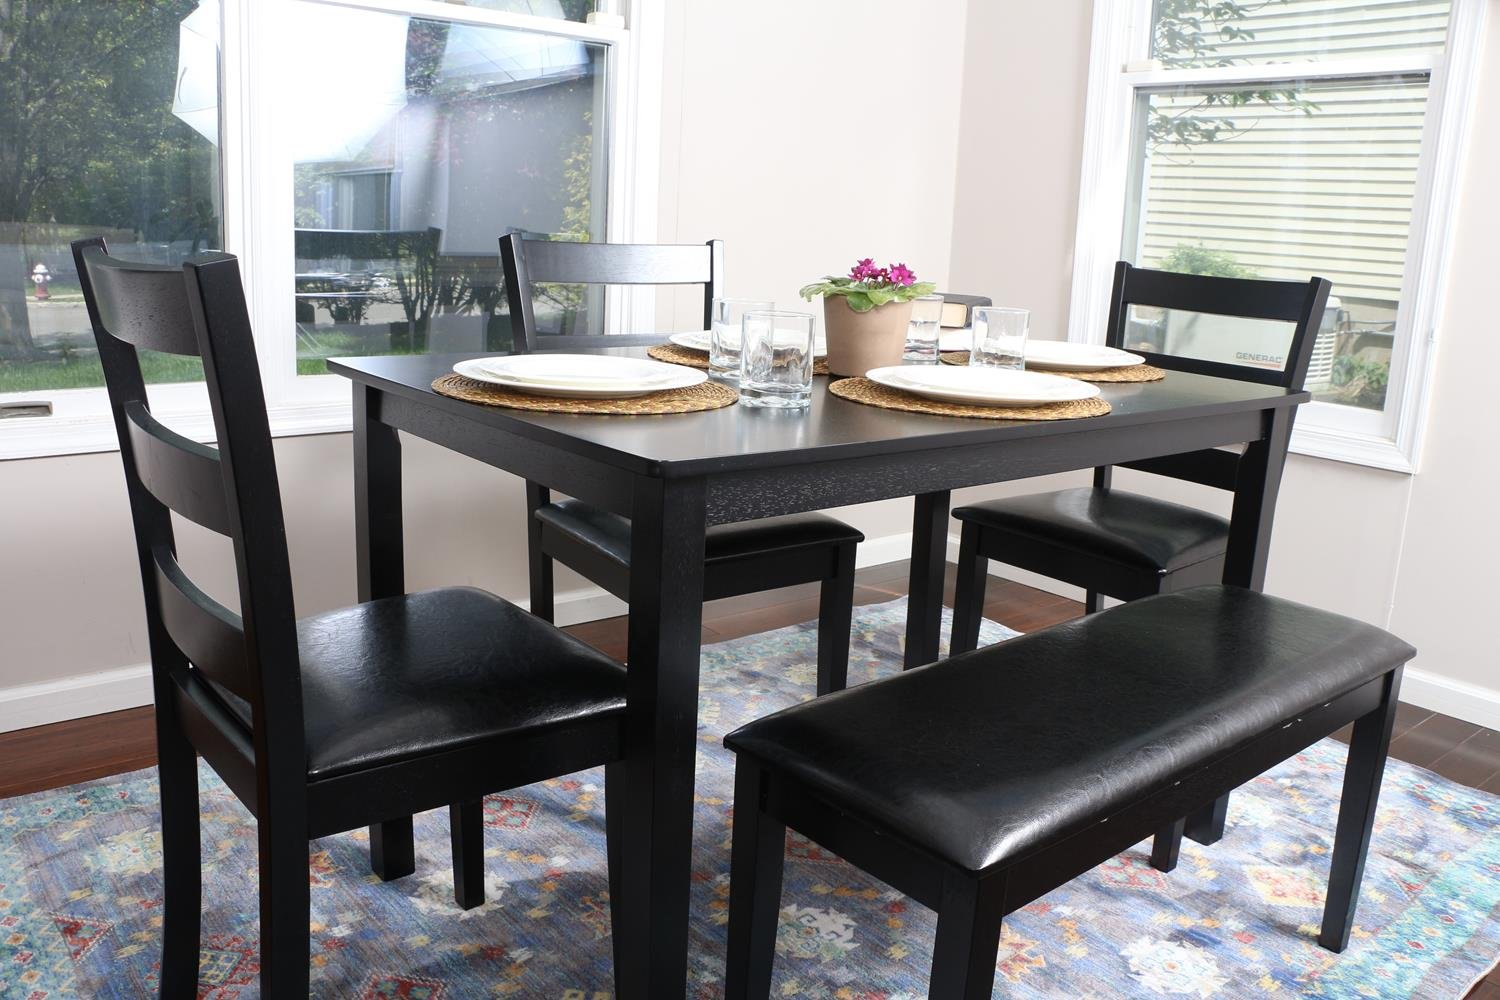 Prime Life Home 4 Person 5 Piece Kitchen Dining Table Set 1 Table 3 Leather Chairs 1 Bench Black J150232Black Machost Co Dining Chair Design Ideas Machostcouk